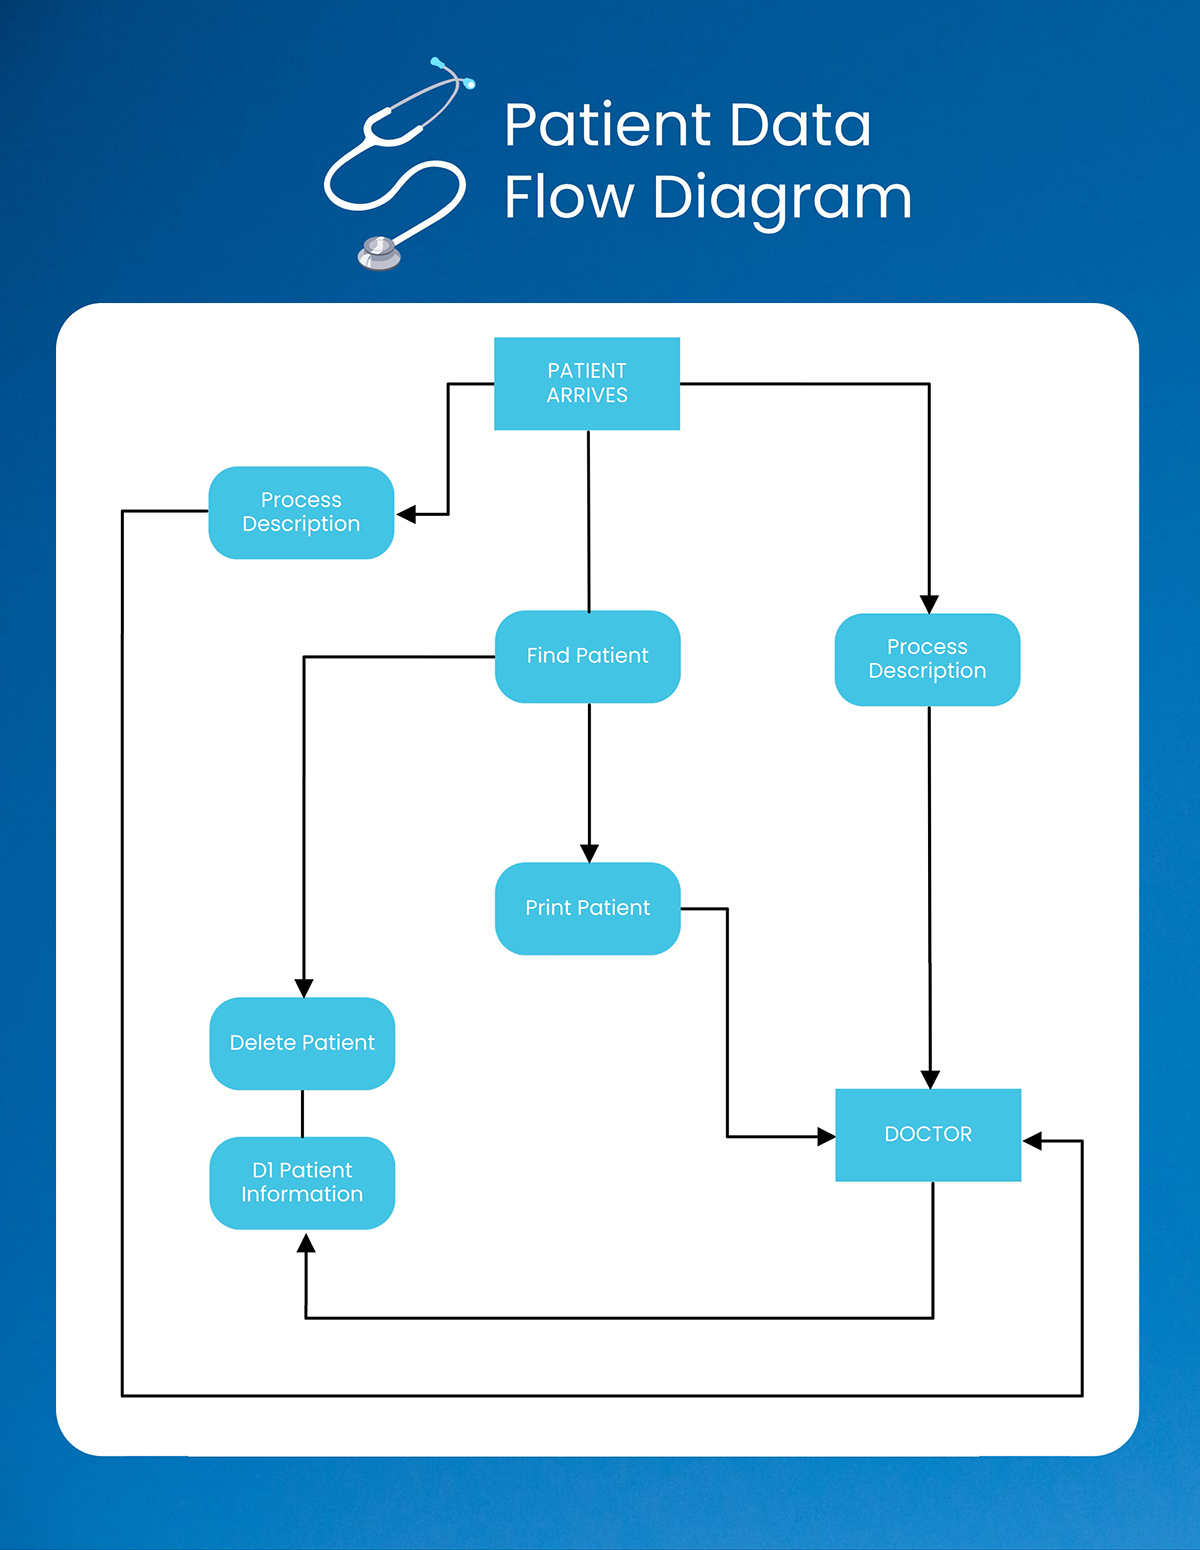 A hospital system data flow diagram template available in Visme.